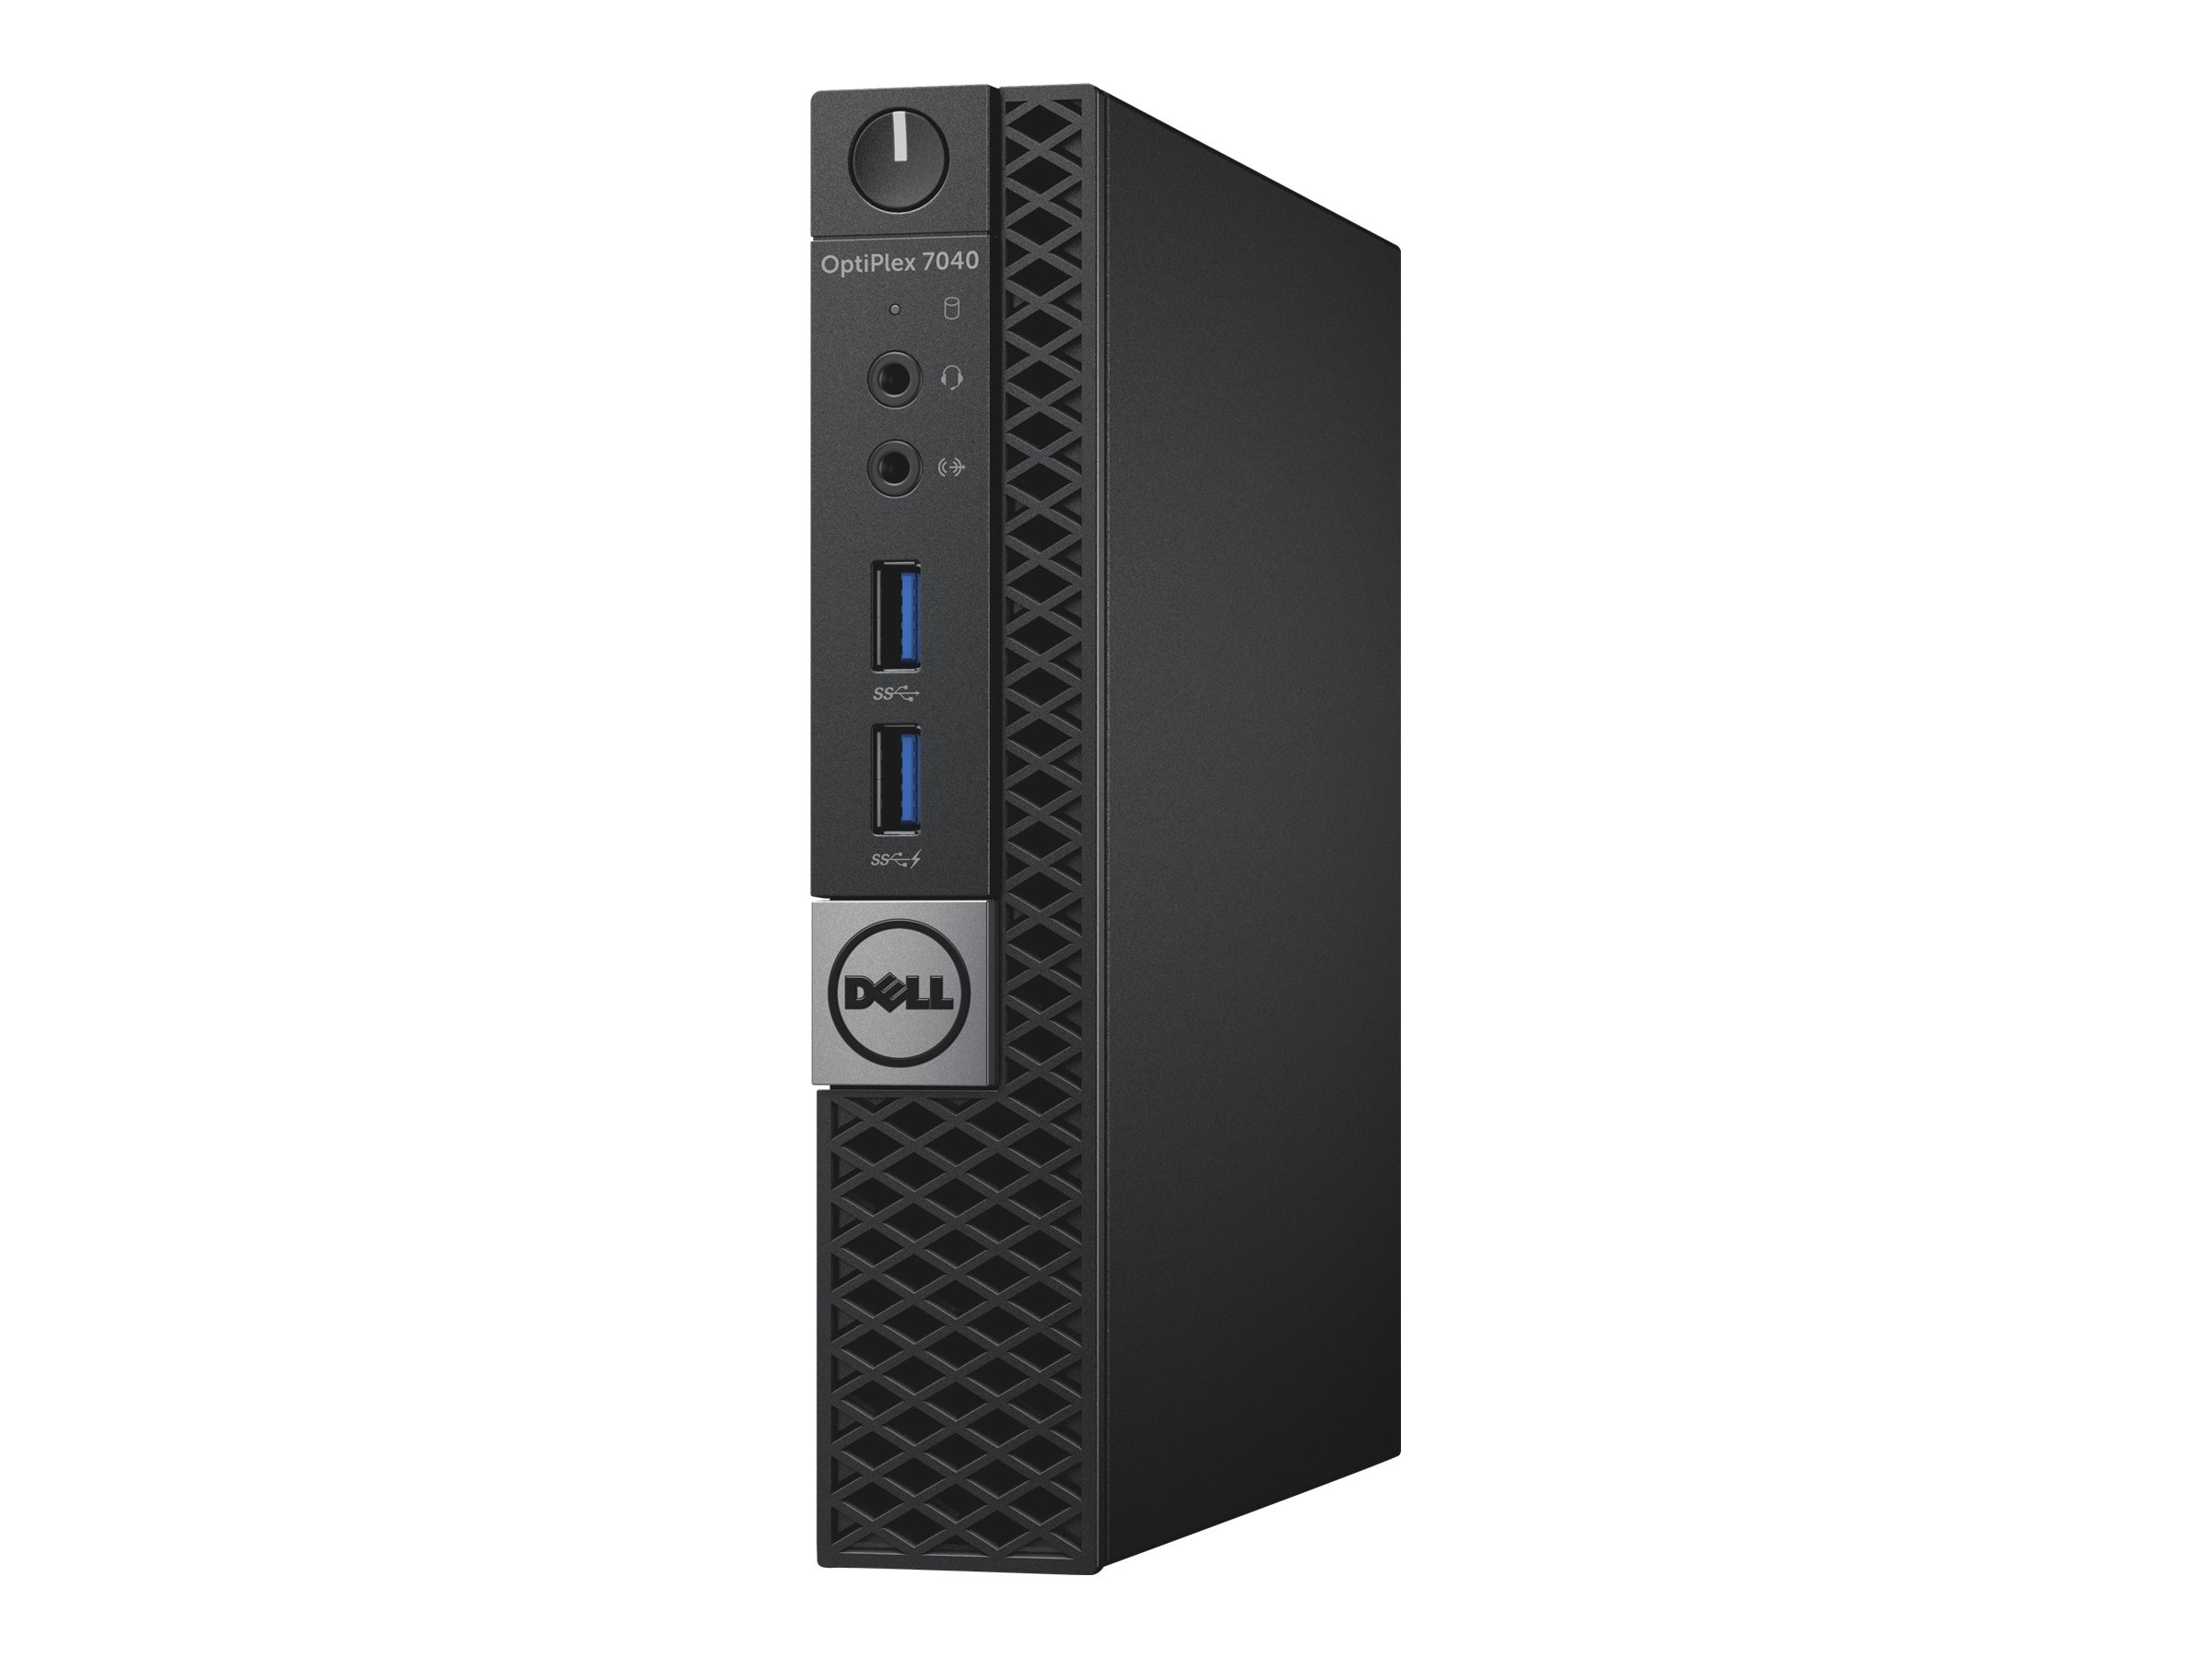 Dell OptiPlex 7040 2.5GHz Core i5 8GB RAM 128GB hard drive, 5JNC4